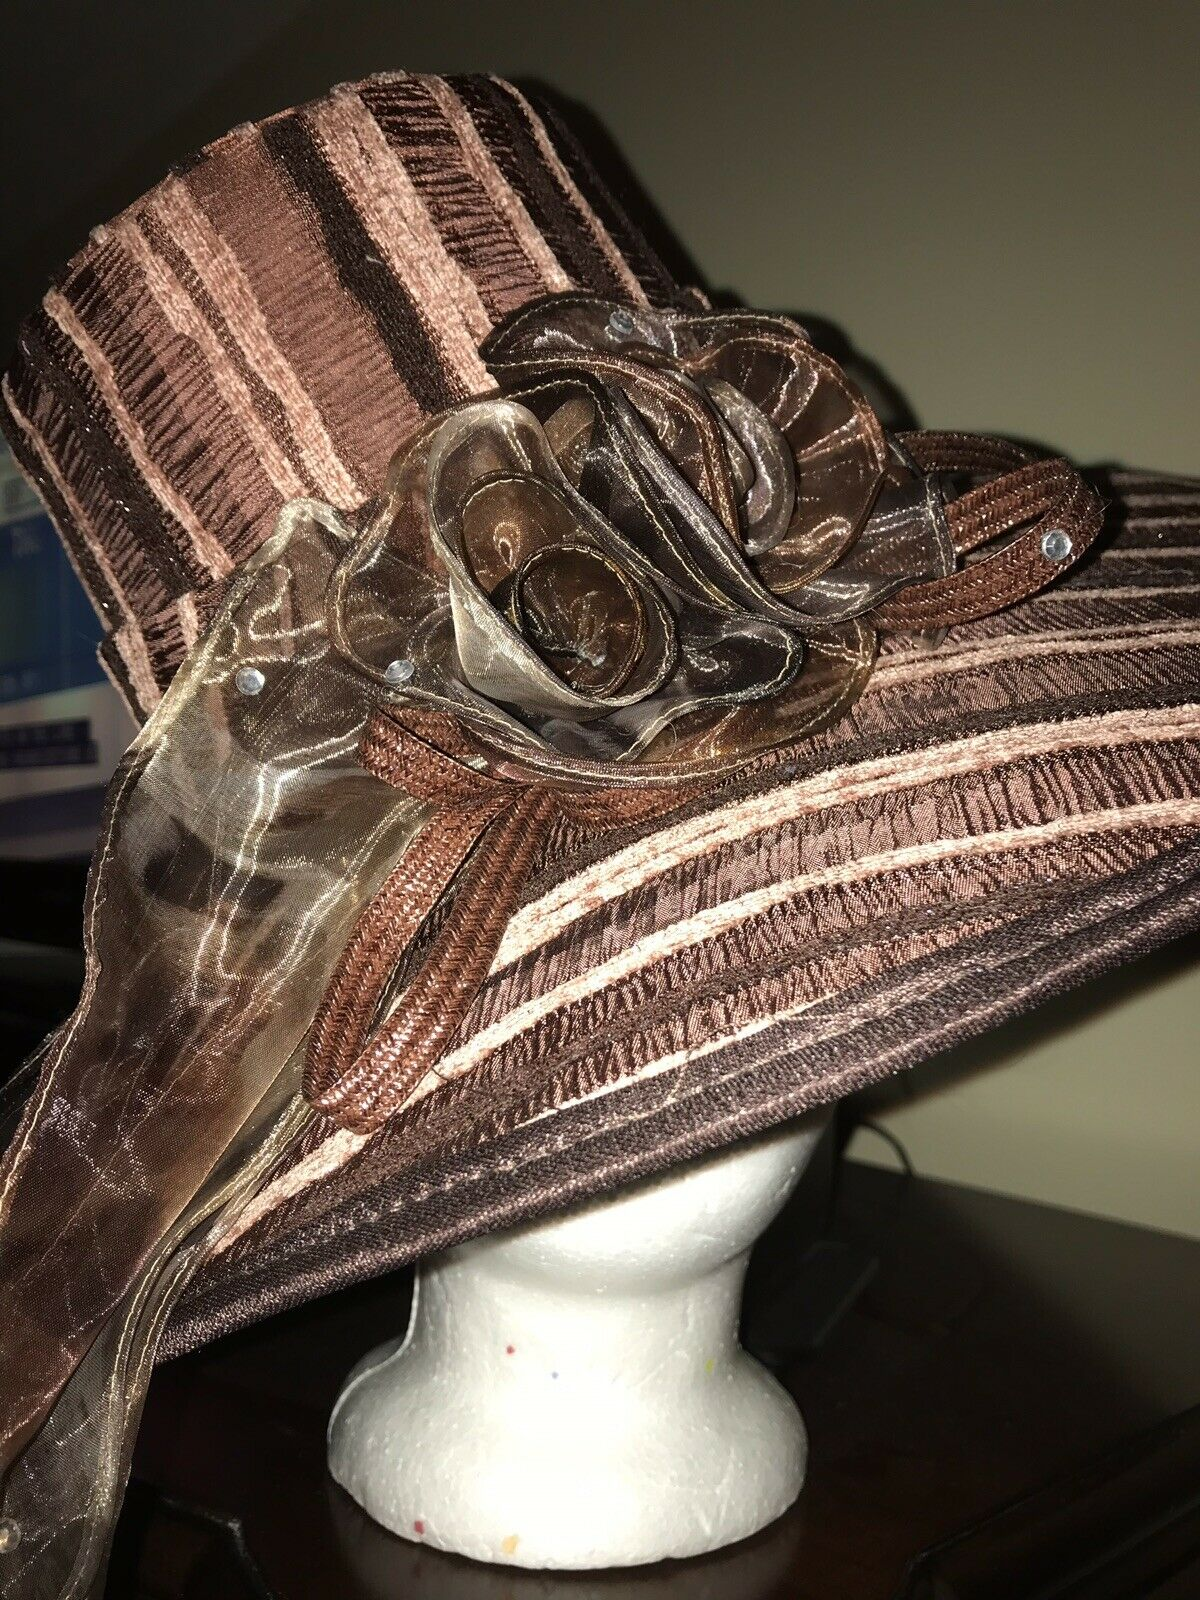 Ladies Exquisite, Charming Preakness Belmont Race Ready Hat Gorgeous Browns New